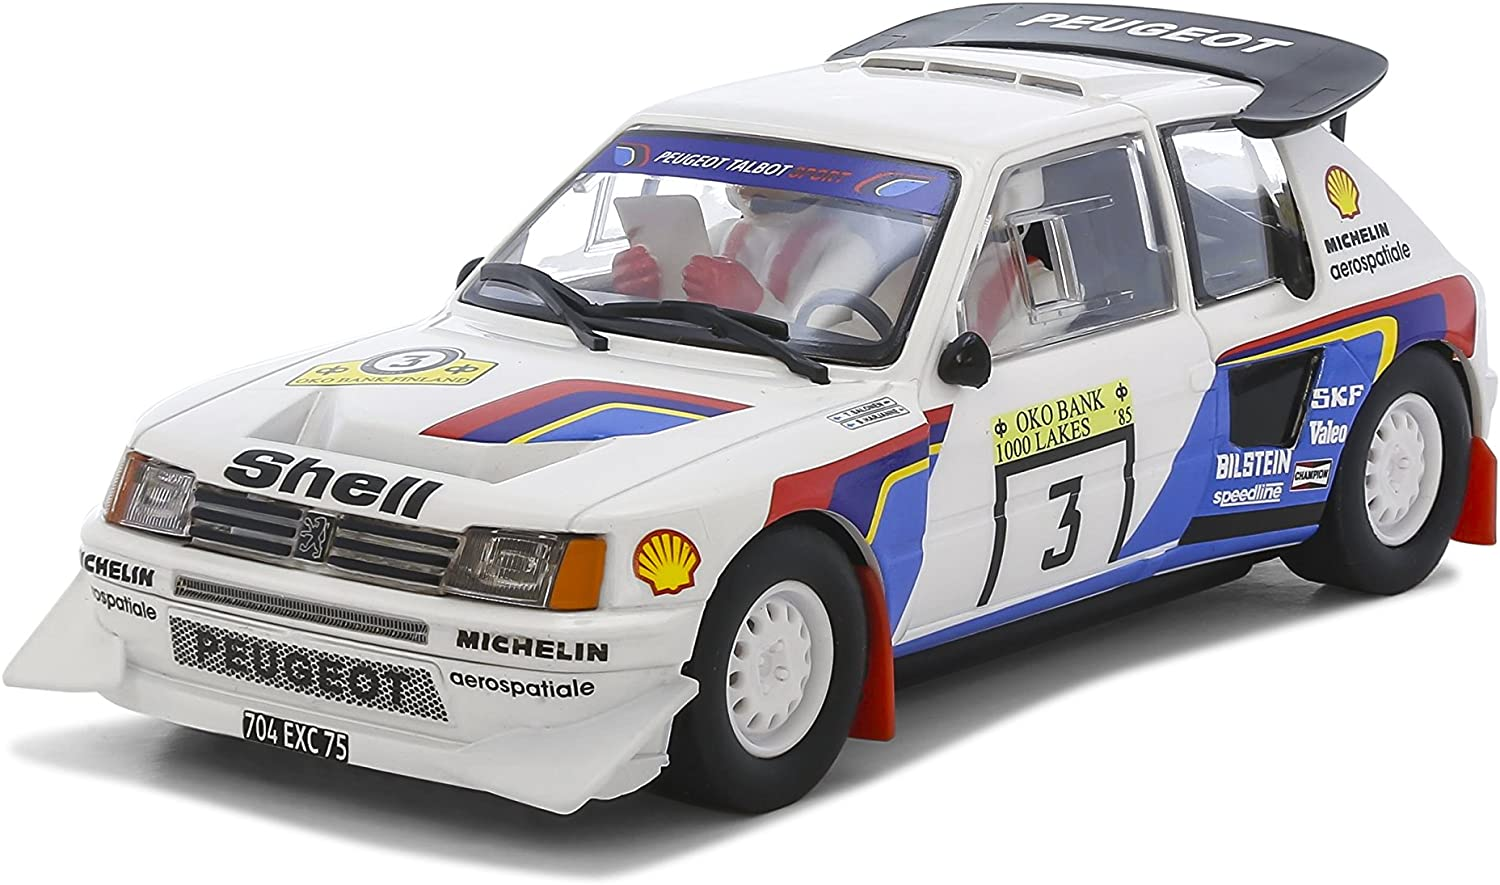 1:32 Scale Scalextric Peugeot 205 T16 Shell Slot Car